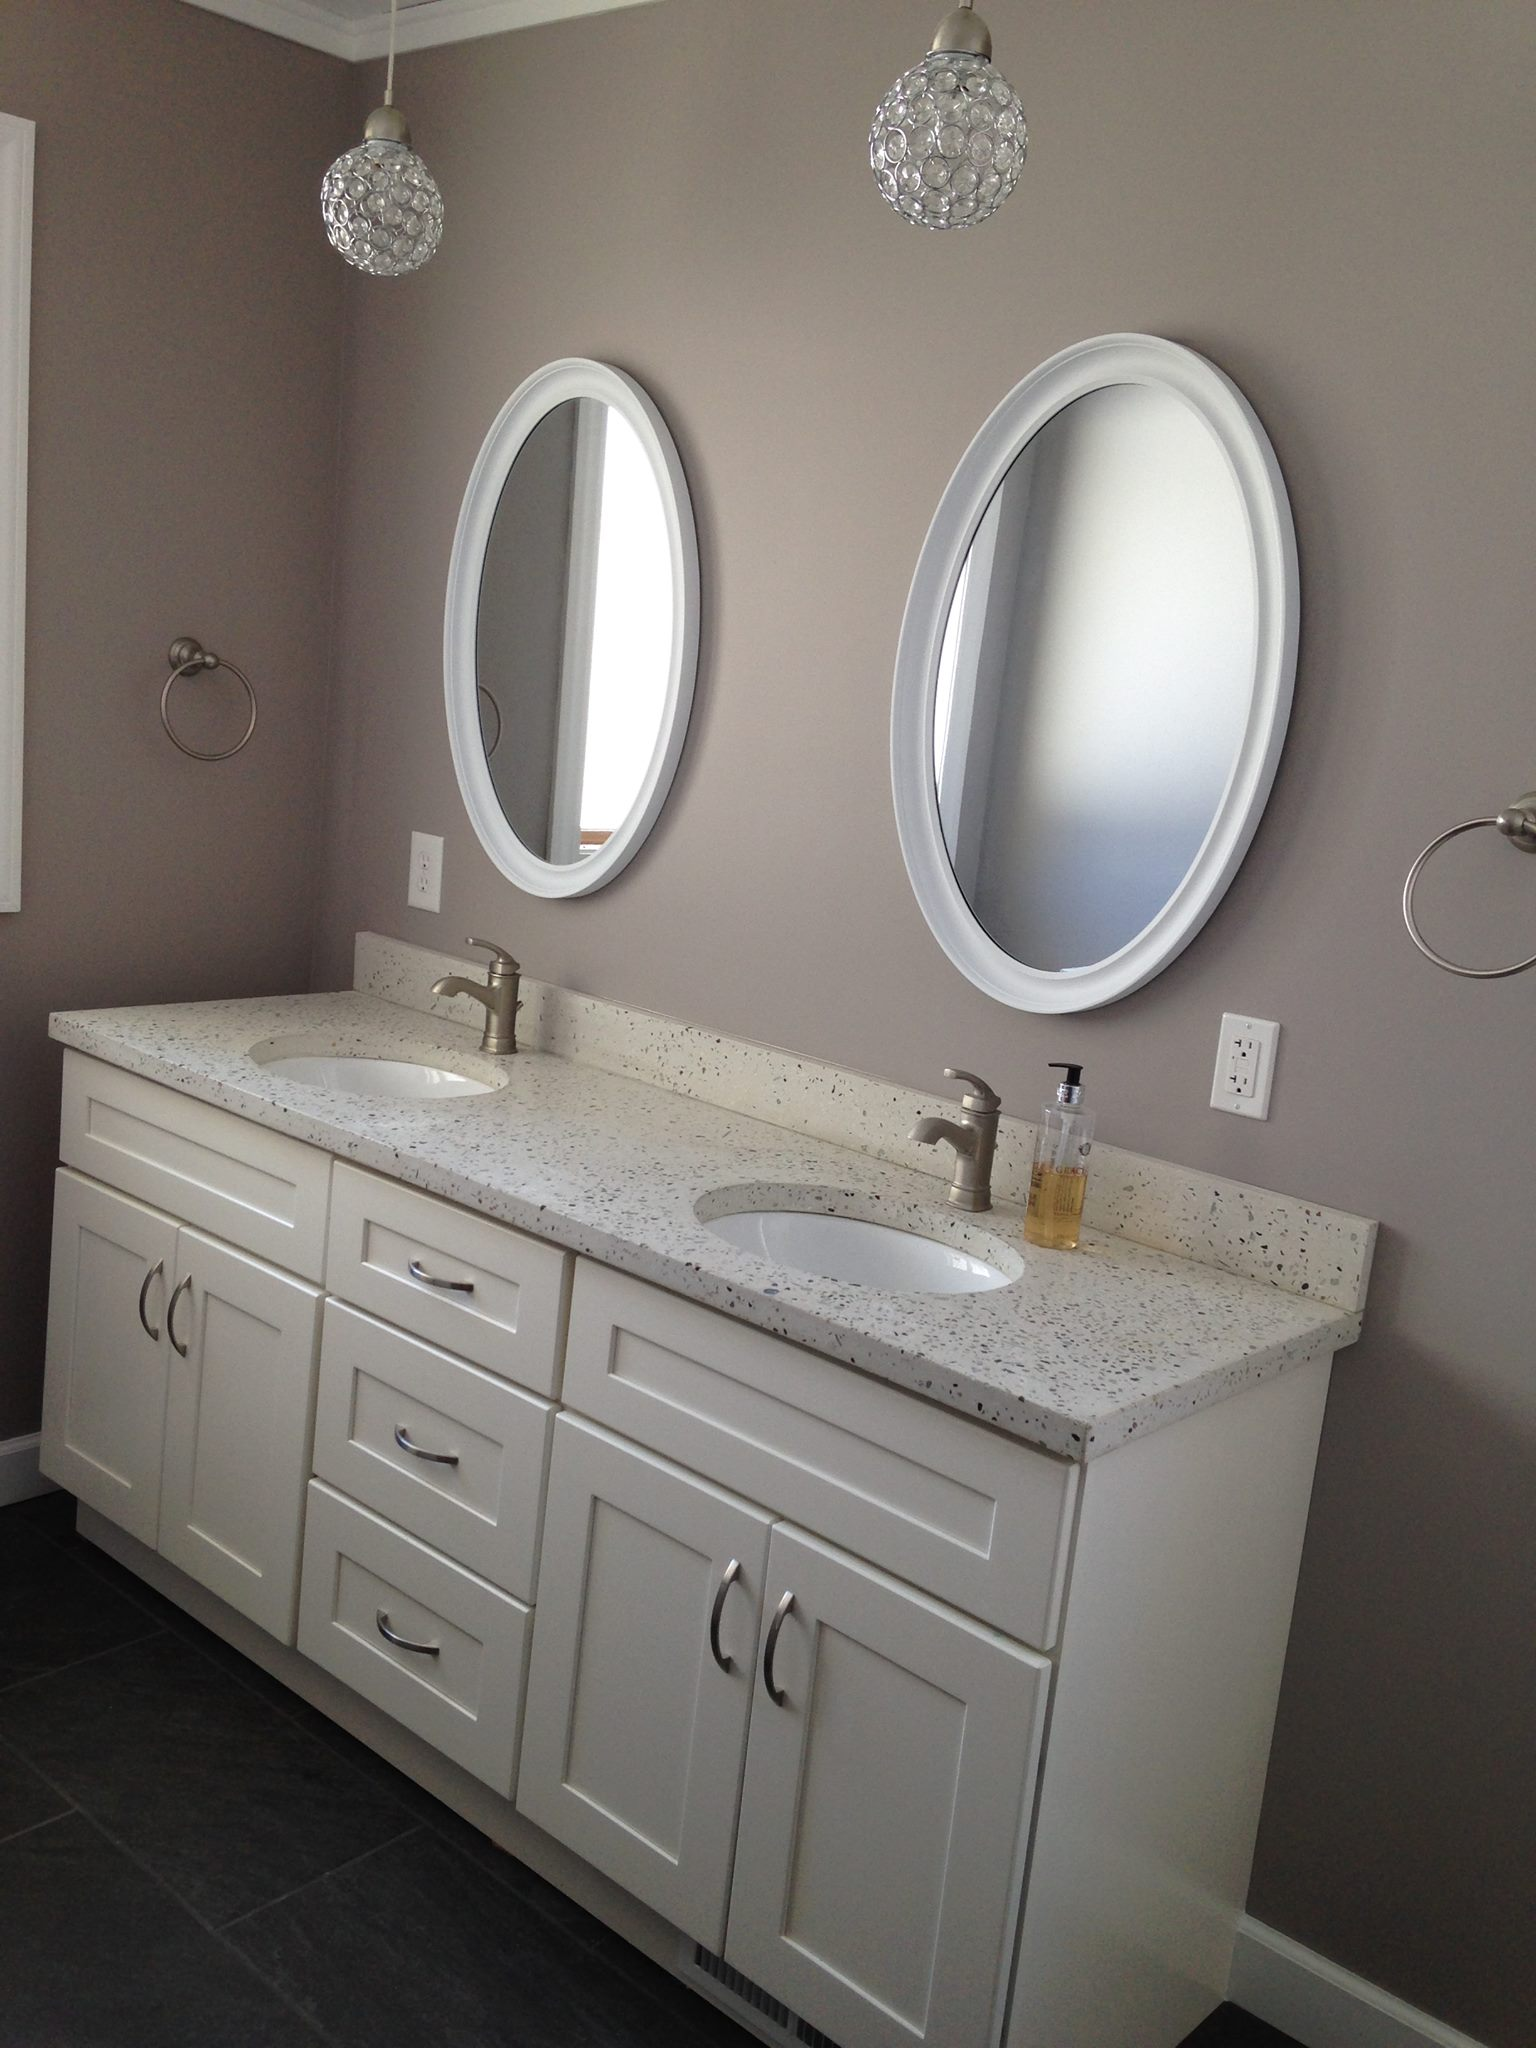 Concrete Bathroom Sink and Remodel – The Concrete Moon